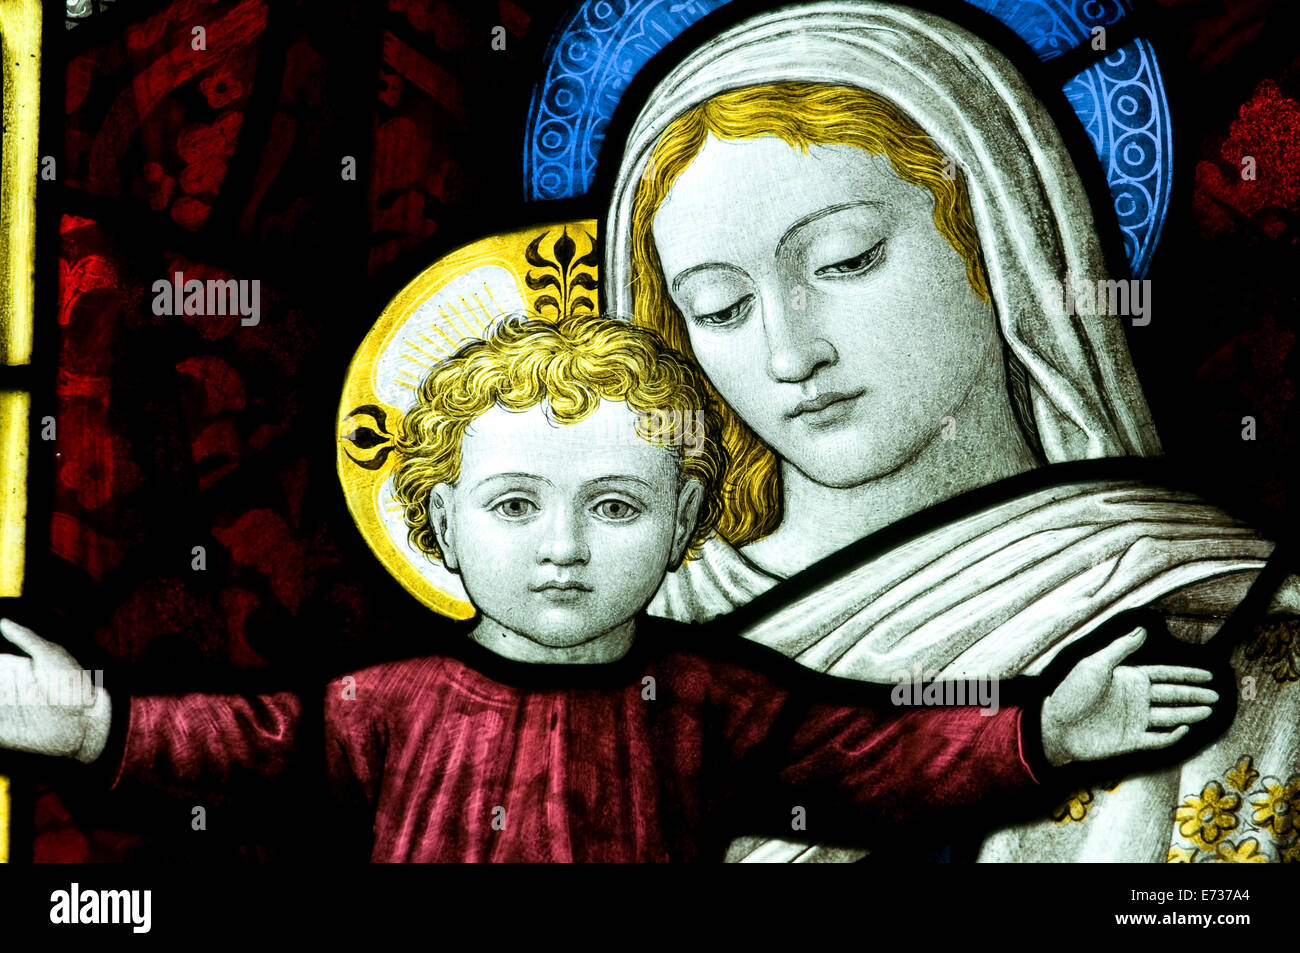 the blessed virgin mother mary and christ child jesus with open